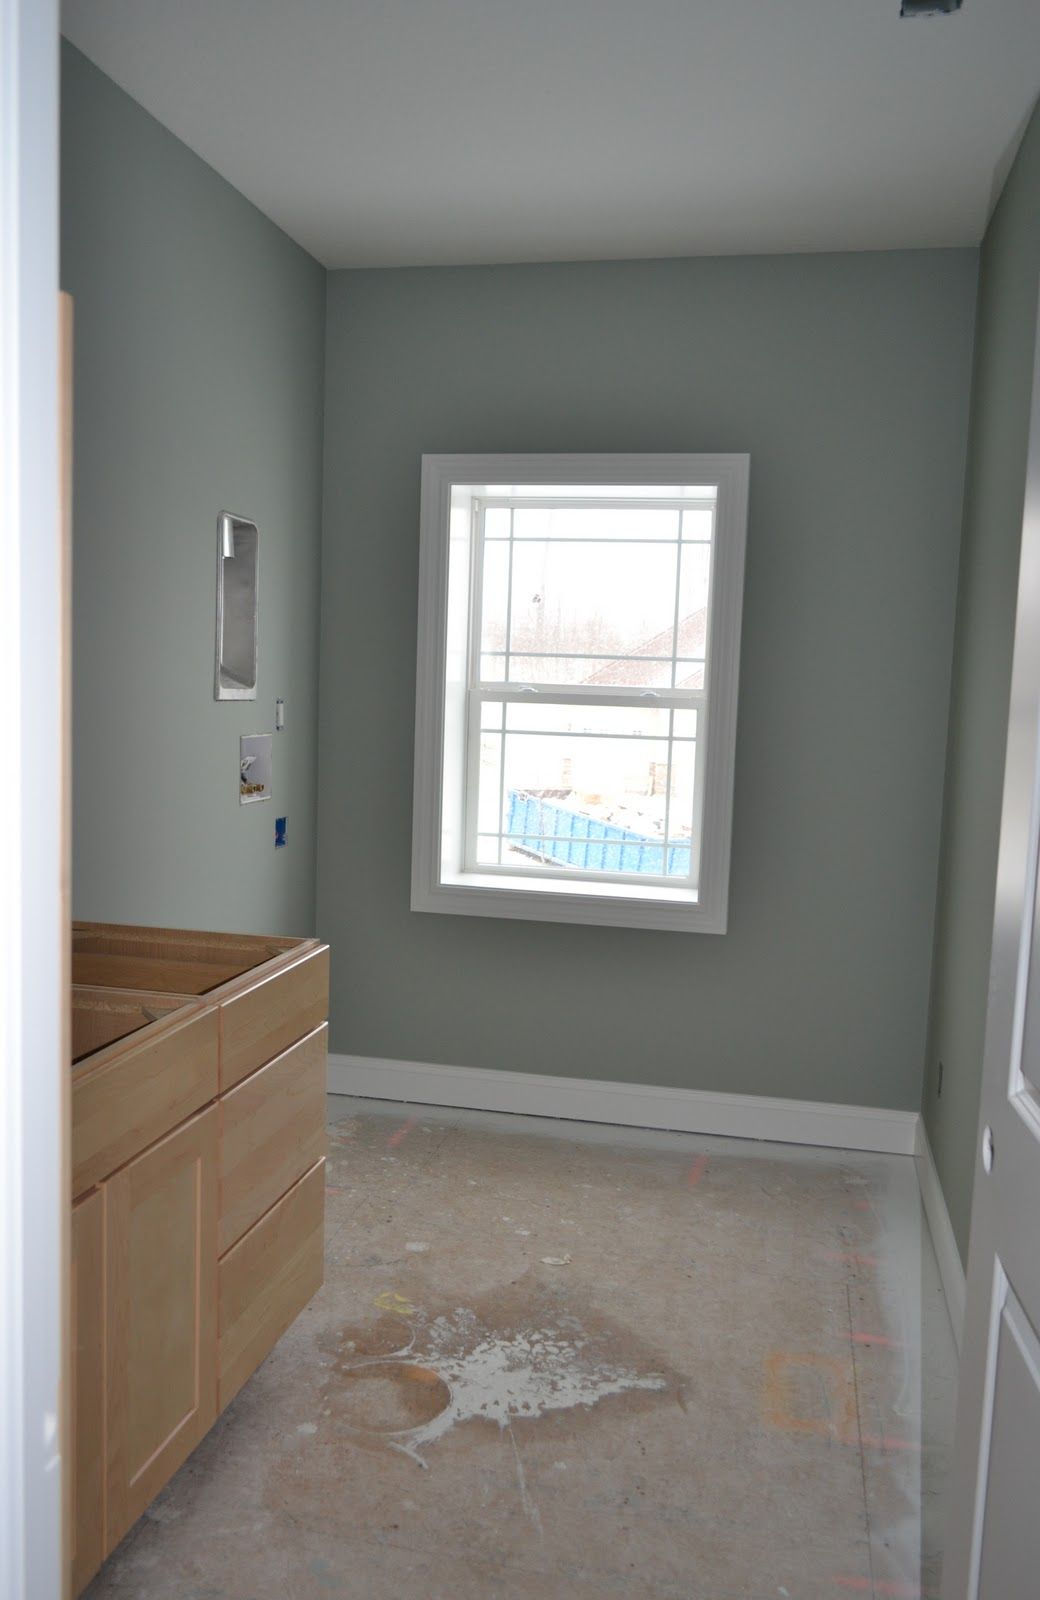 De jong dream house painting almost done - Sherwin williams comfort gray living room ...